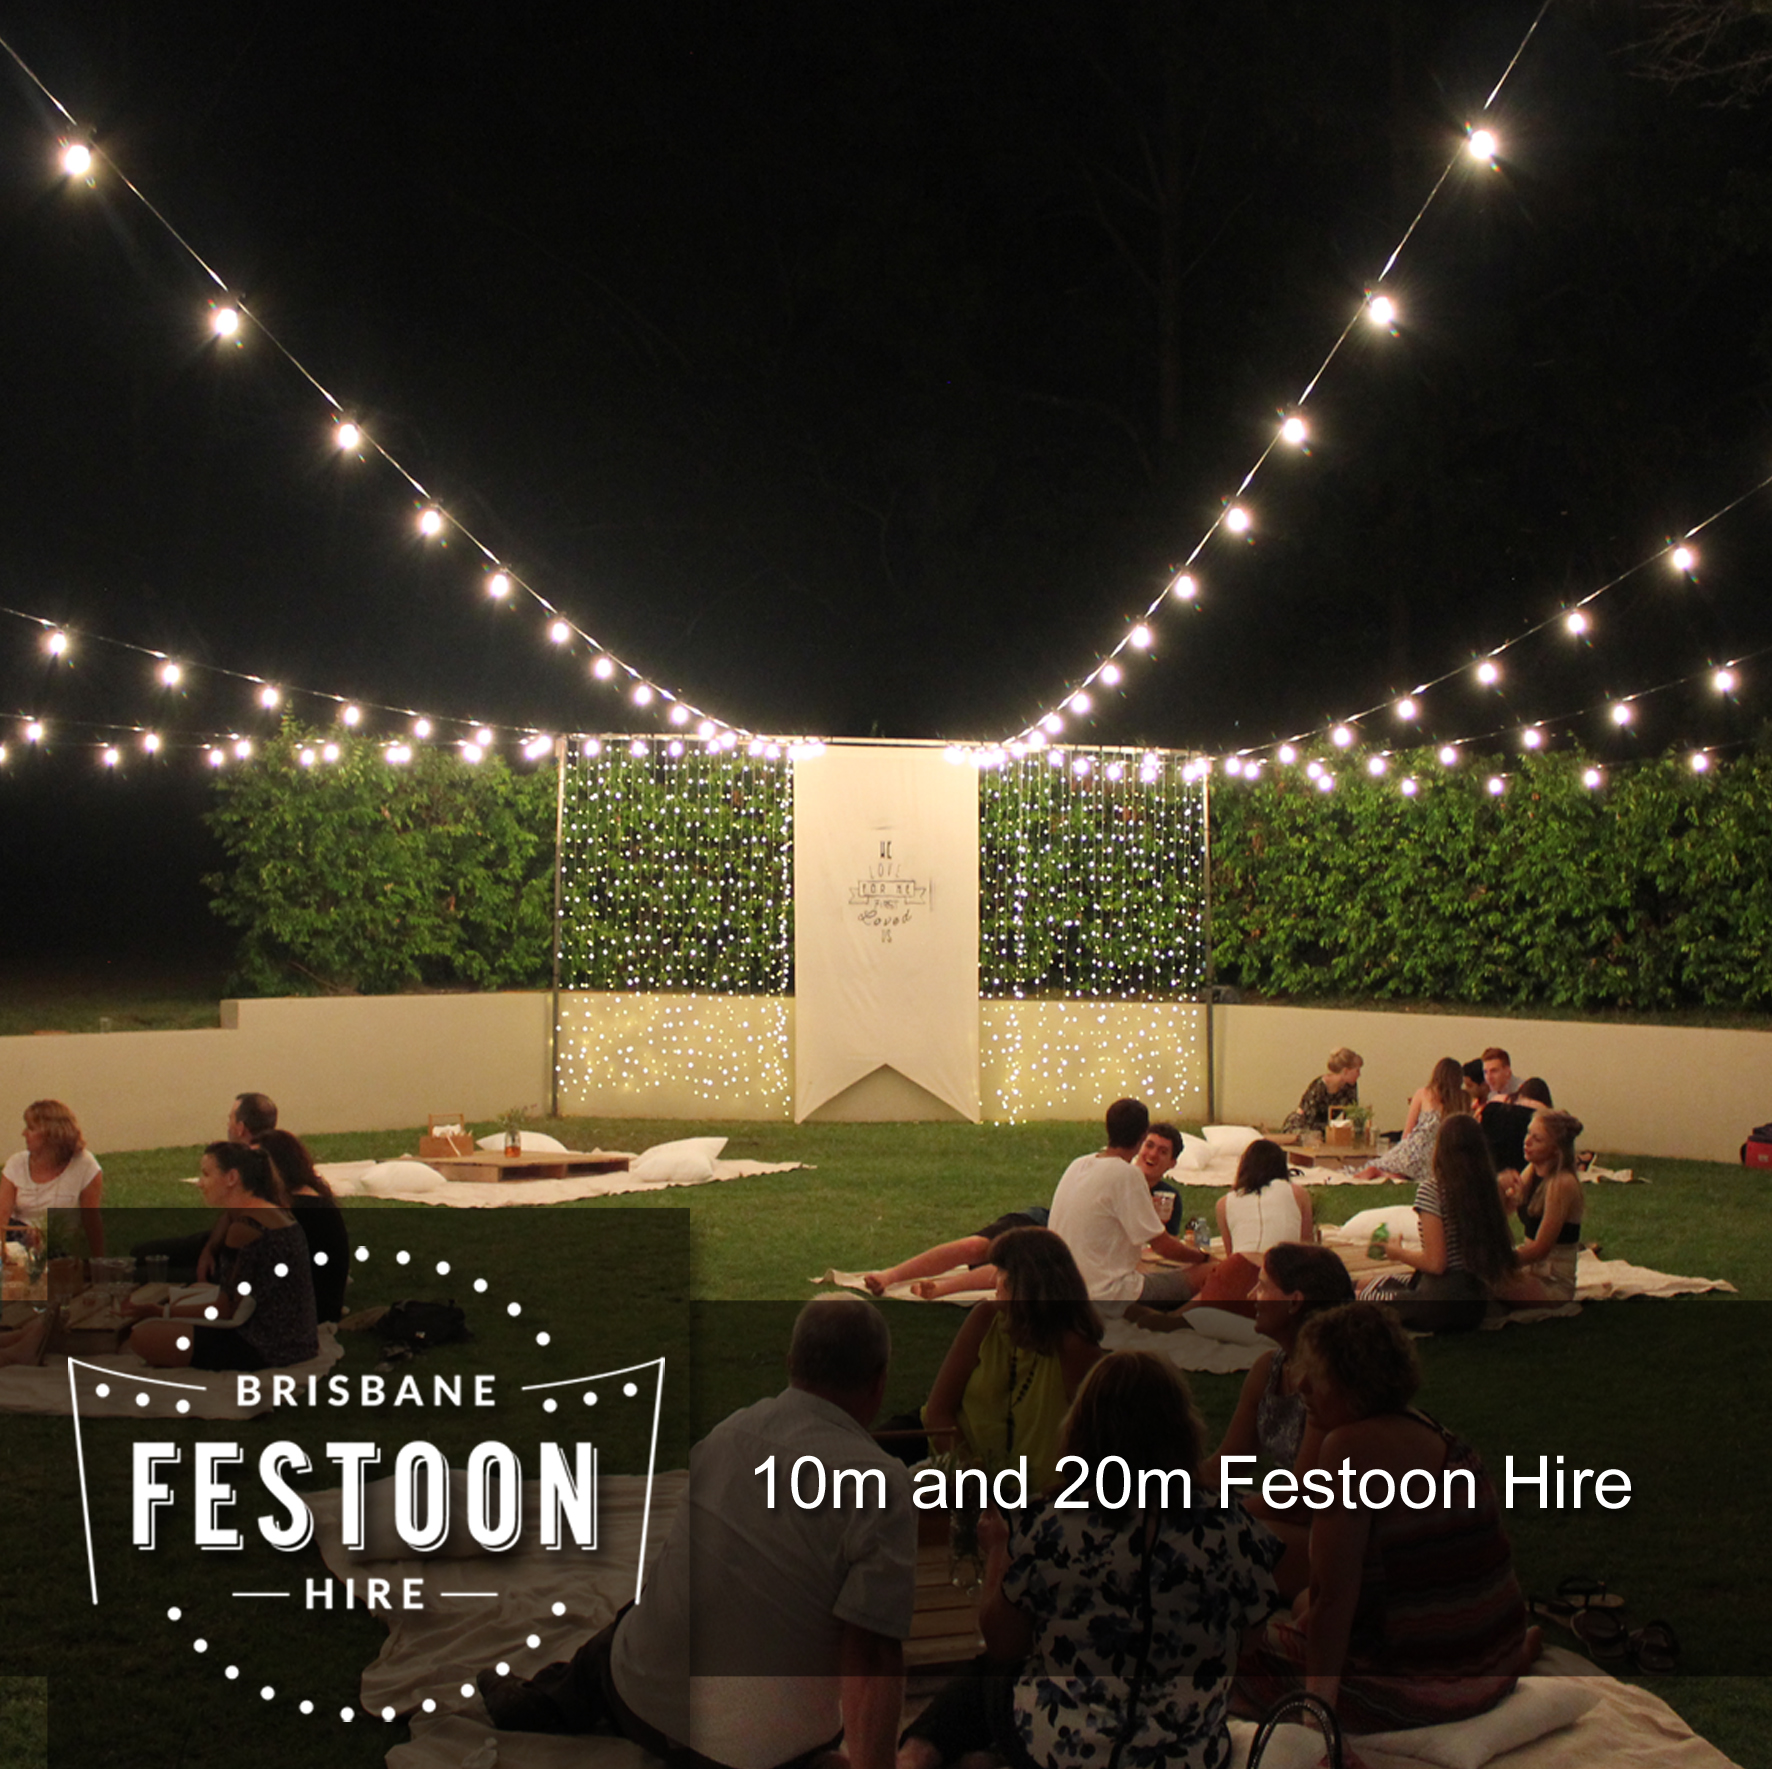 Brisbane Festoon Hire - 10m and 20m Festoon Hire 6.jpg